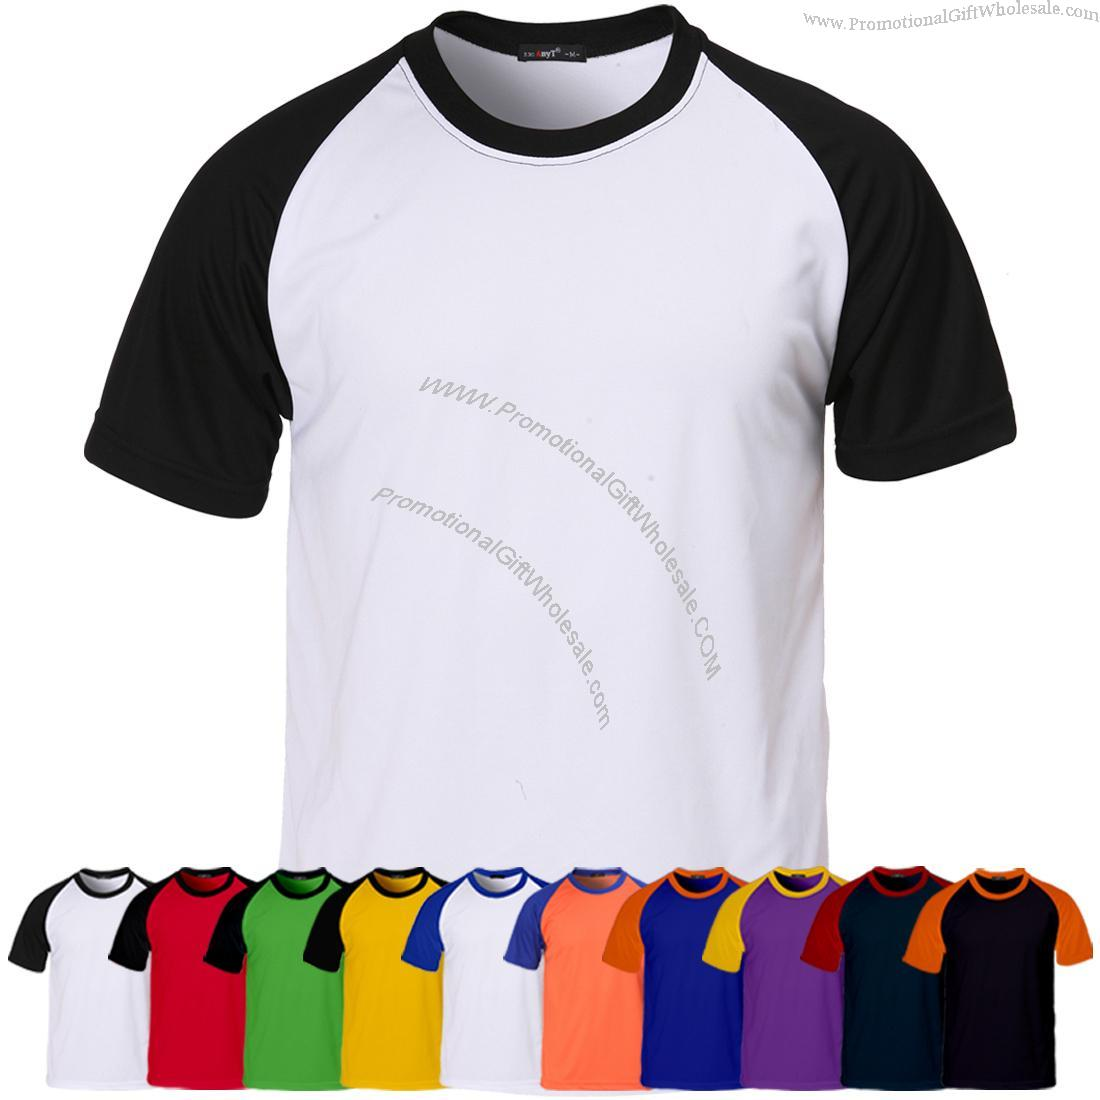 Wholesale nfl merchandise discount nba clothing for Cheapest bulk t shirts